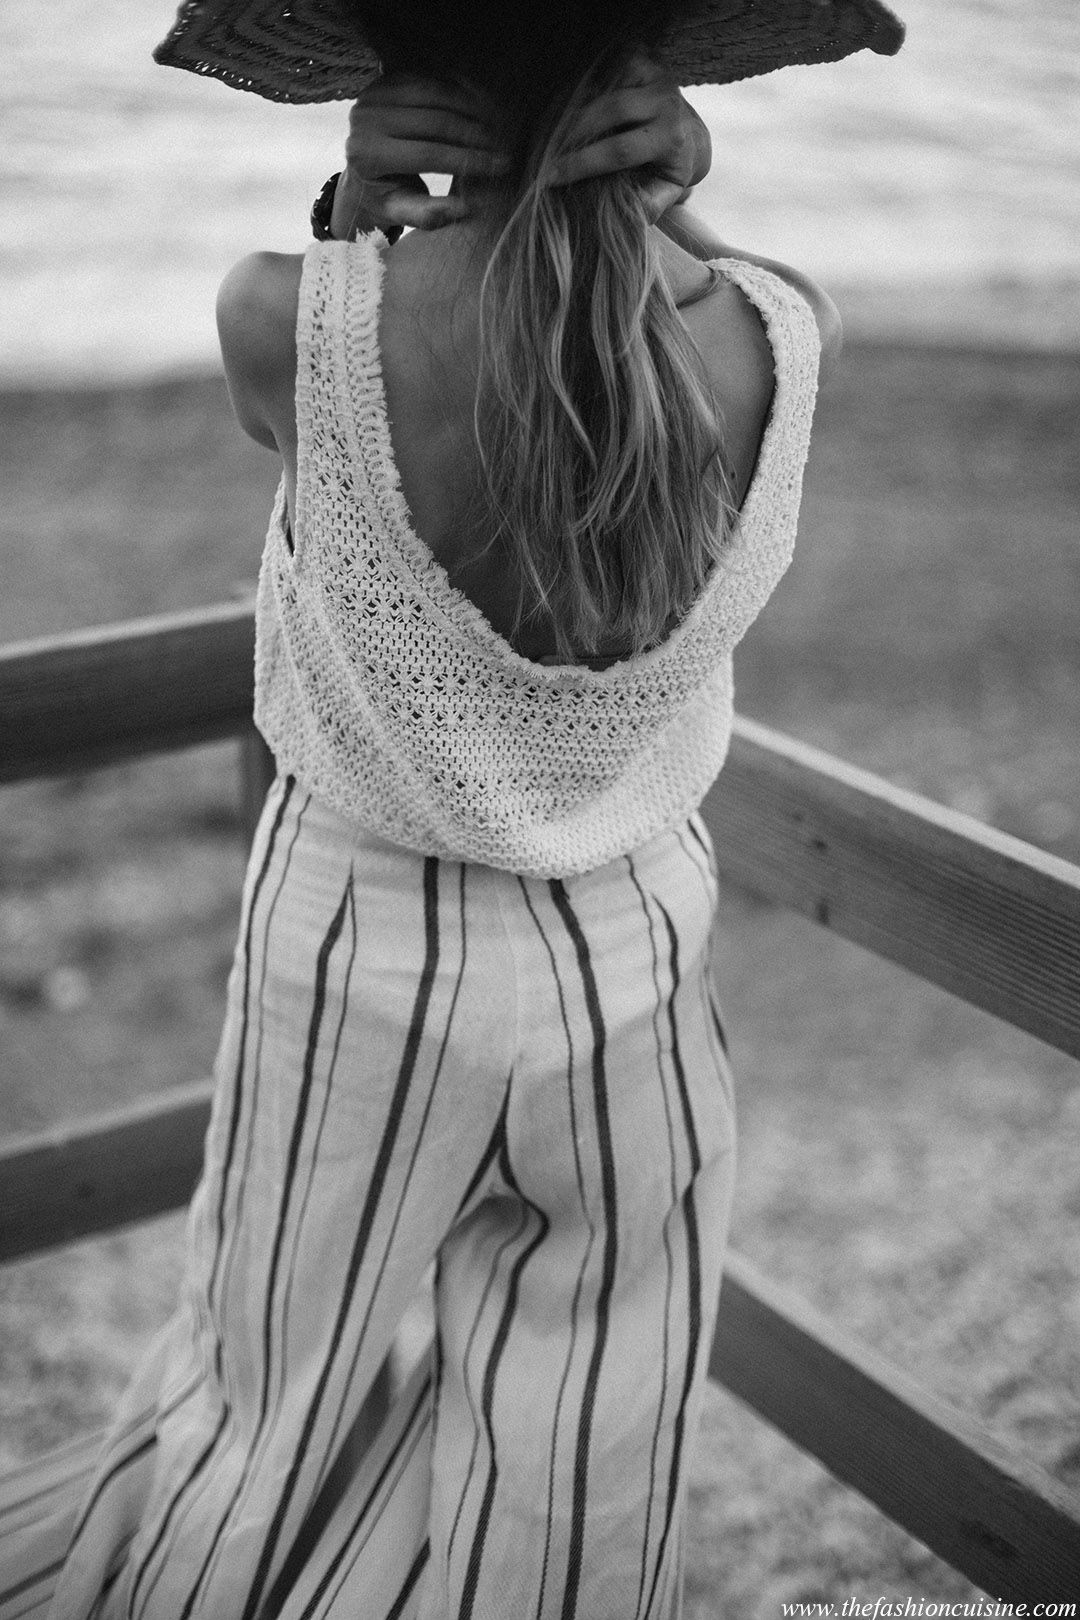 Salt • the fashion cuisine black and white summer tumblr girl photography effortless style